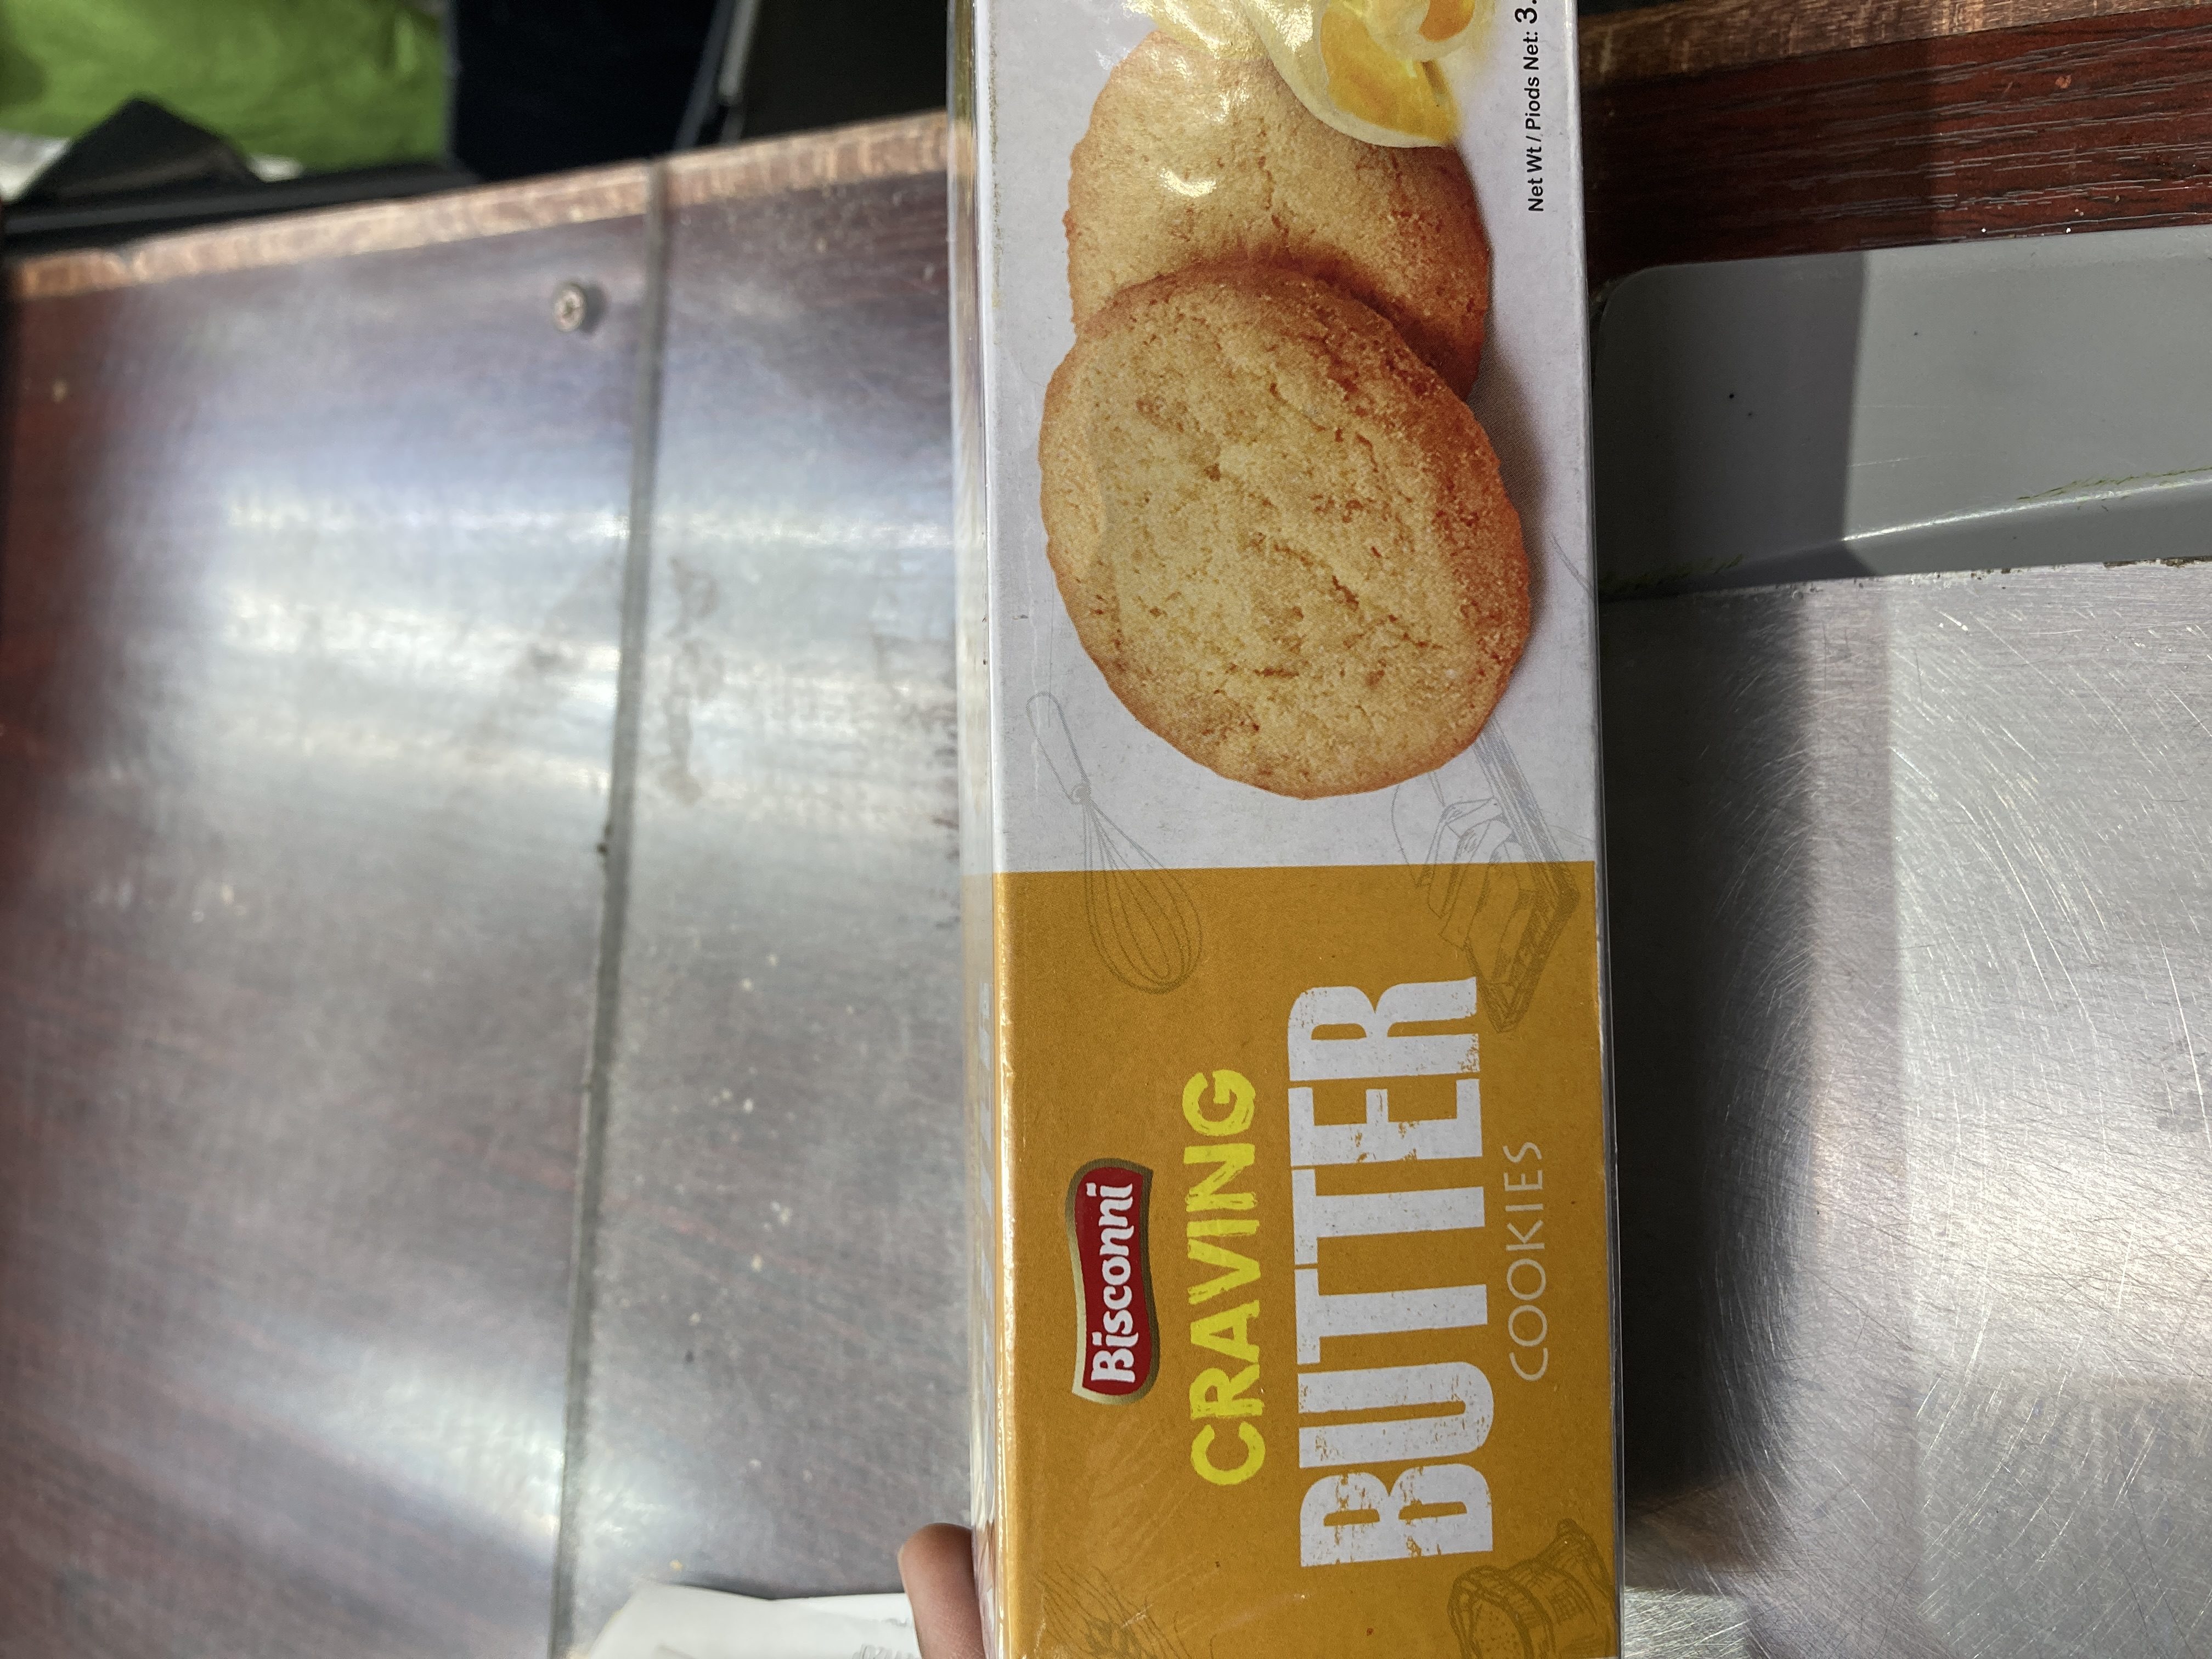 BISCONNI CRAVING BUTTER COOKIES 3.38 oz